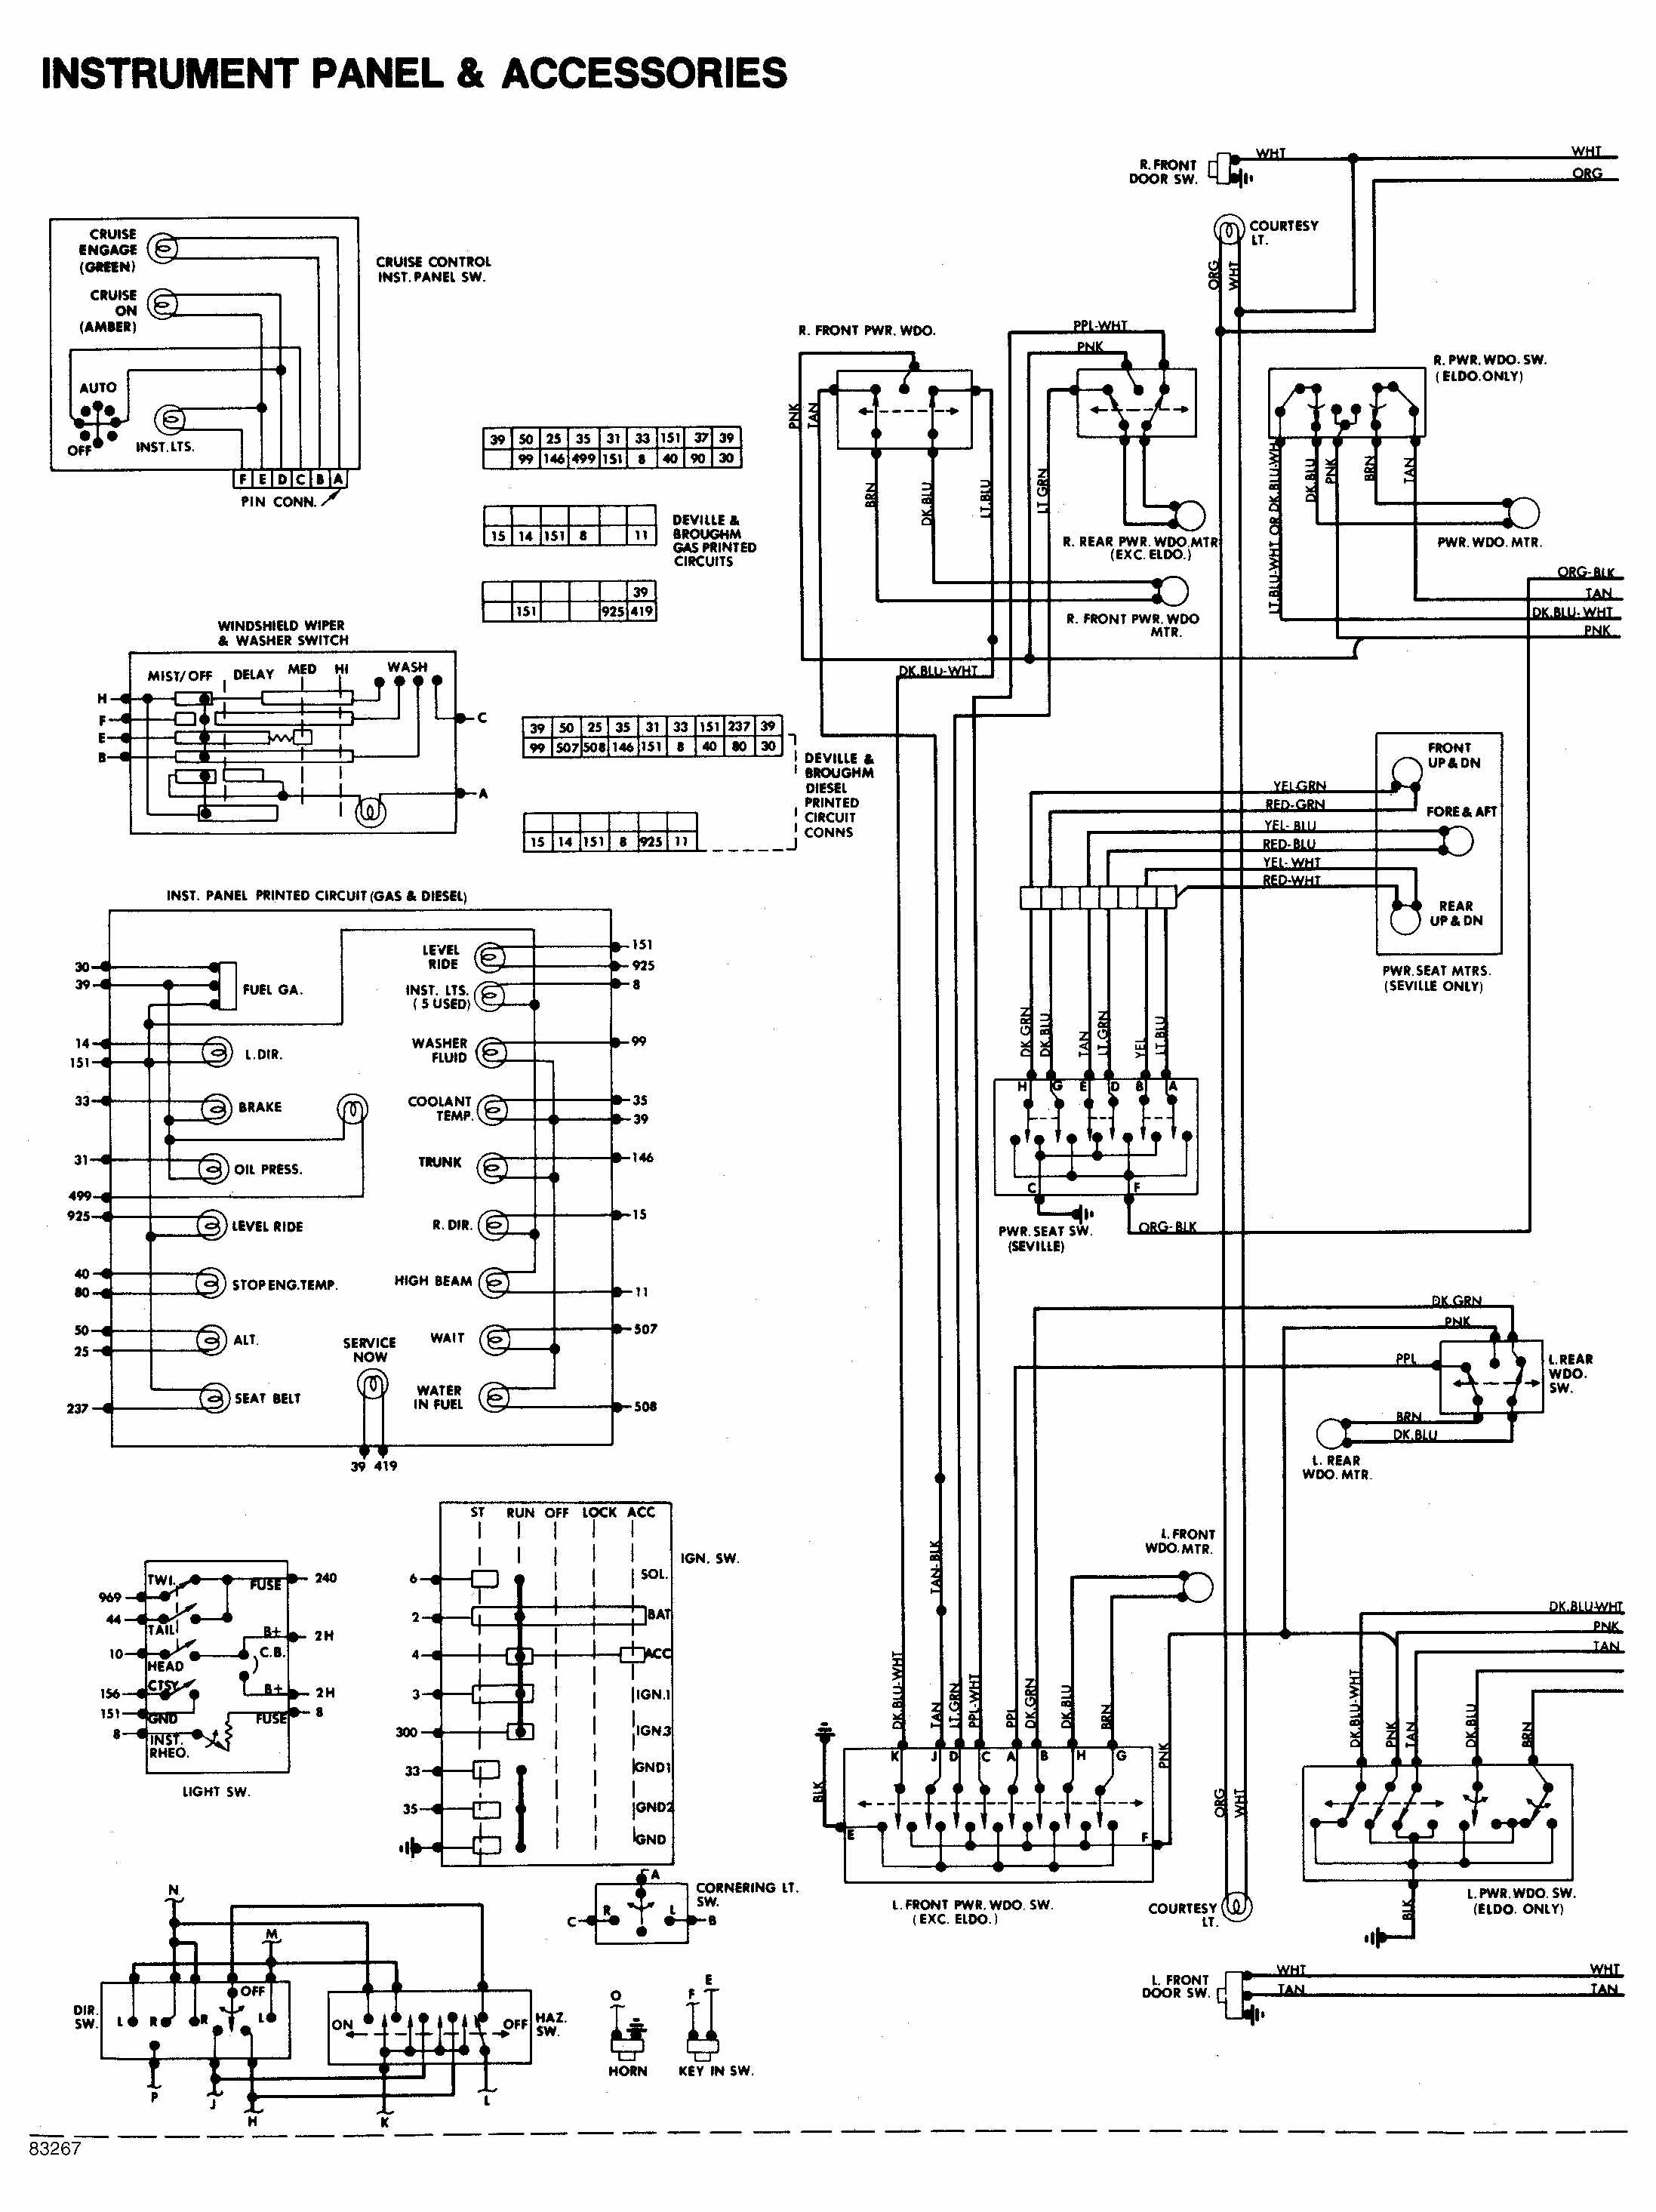 instrument panel and accessories wiring diagram of 1984 cadillac deville 1969 mustang wiring diagram 1969 ranchero wiring diagram \u2022 wiring 1968 chrysler wiring diagram at creativeand.co